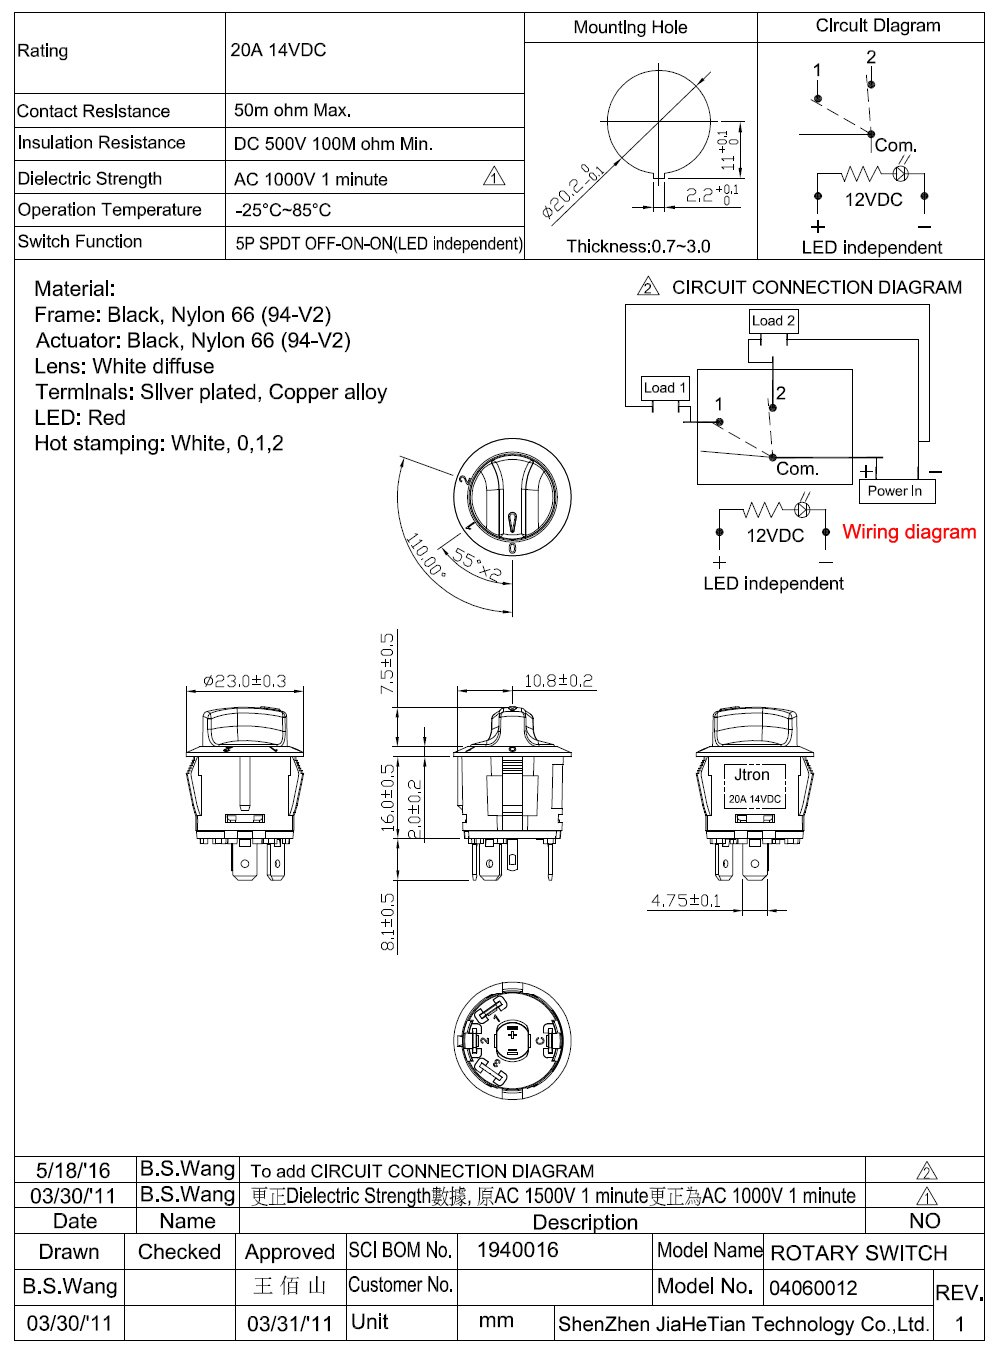 Jtron Rotary Switch 20a 14v Dc Battery Cut Off 5p 5 Way Selector Wiring Diagram Power Kill On Master Disconnect Isolator For Car Boat Marine Van Truck